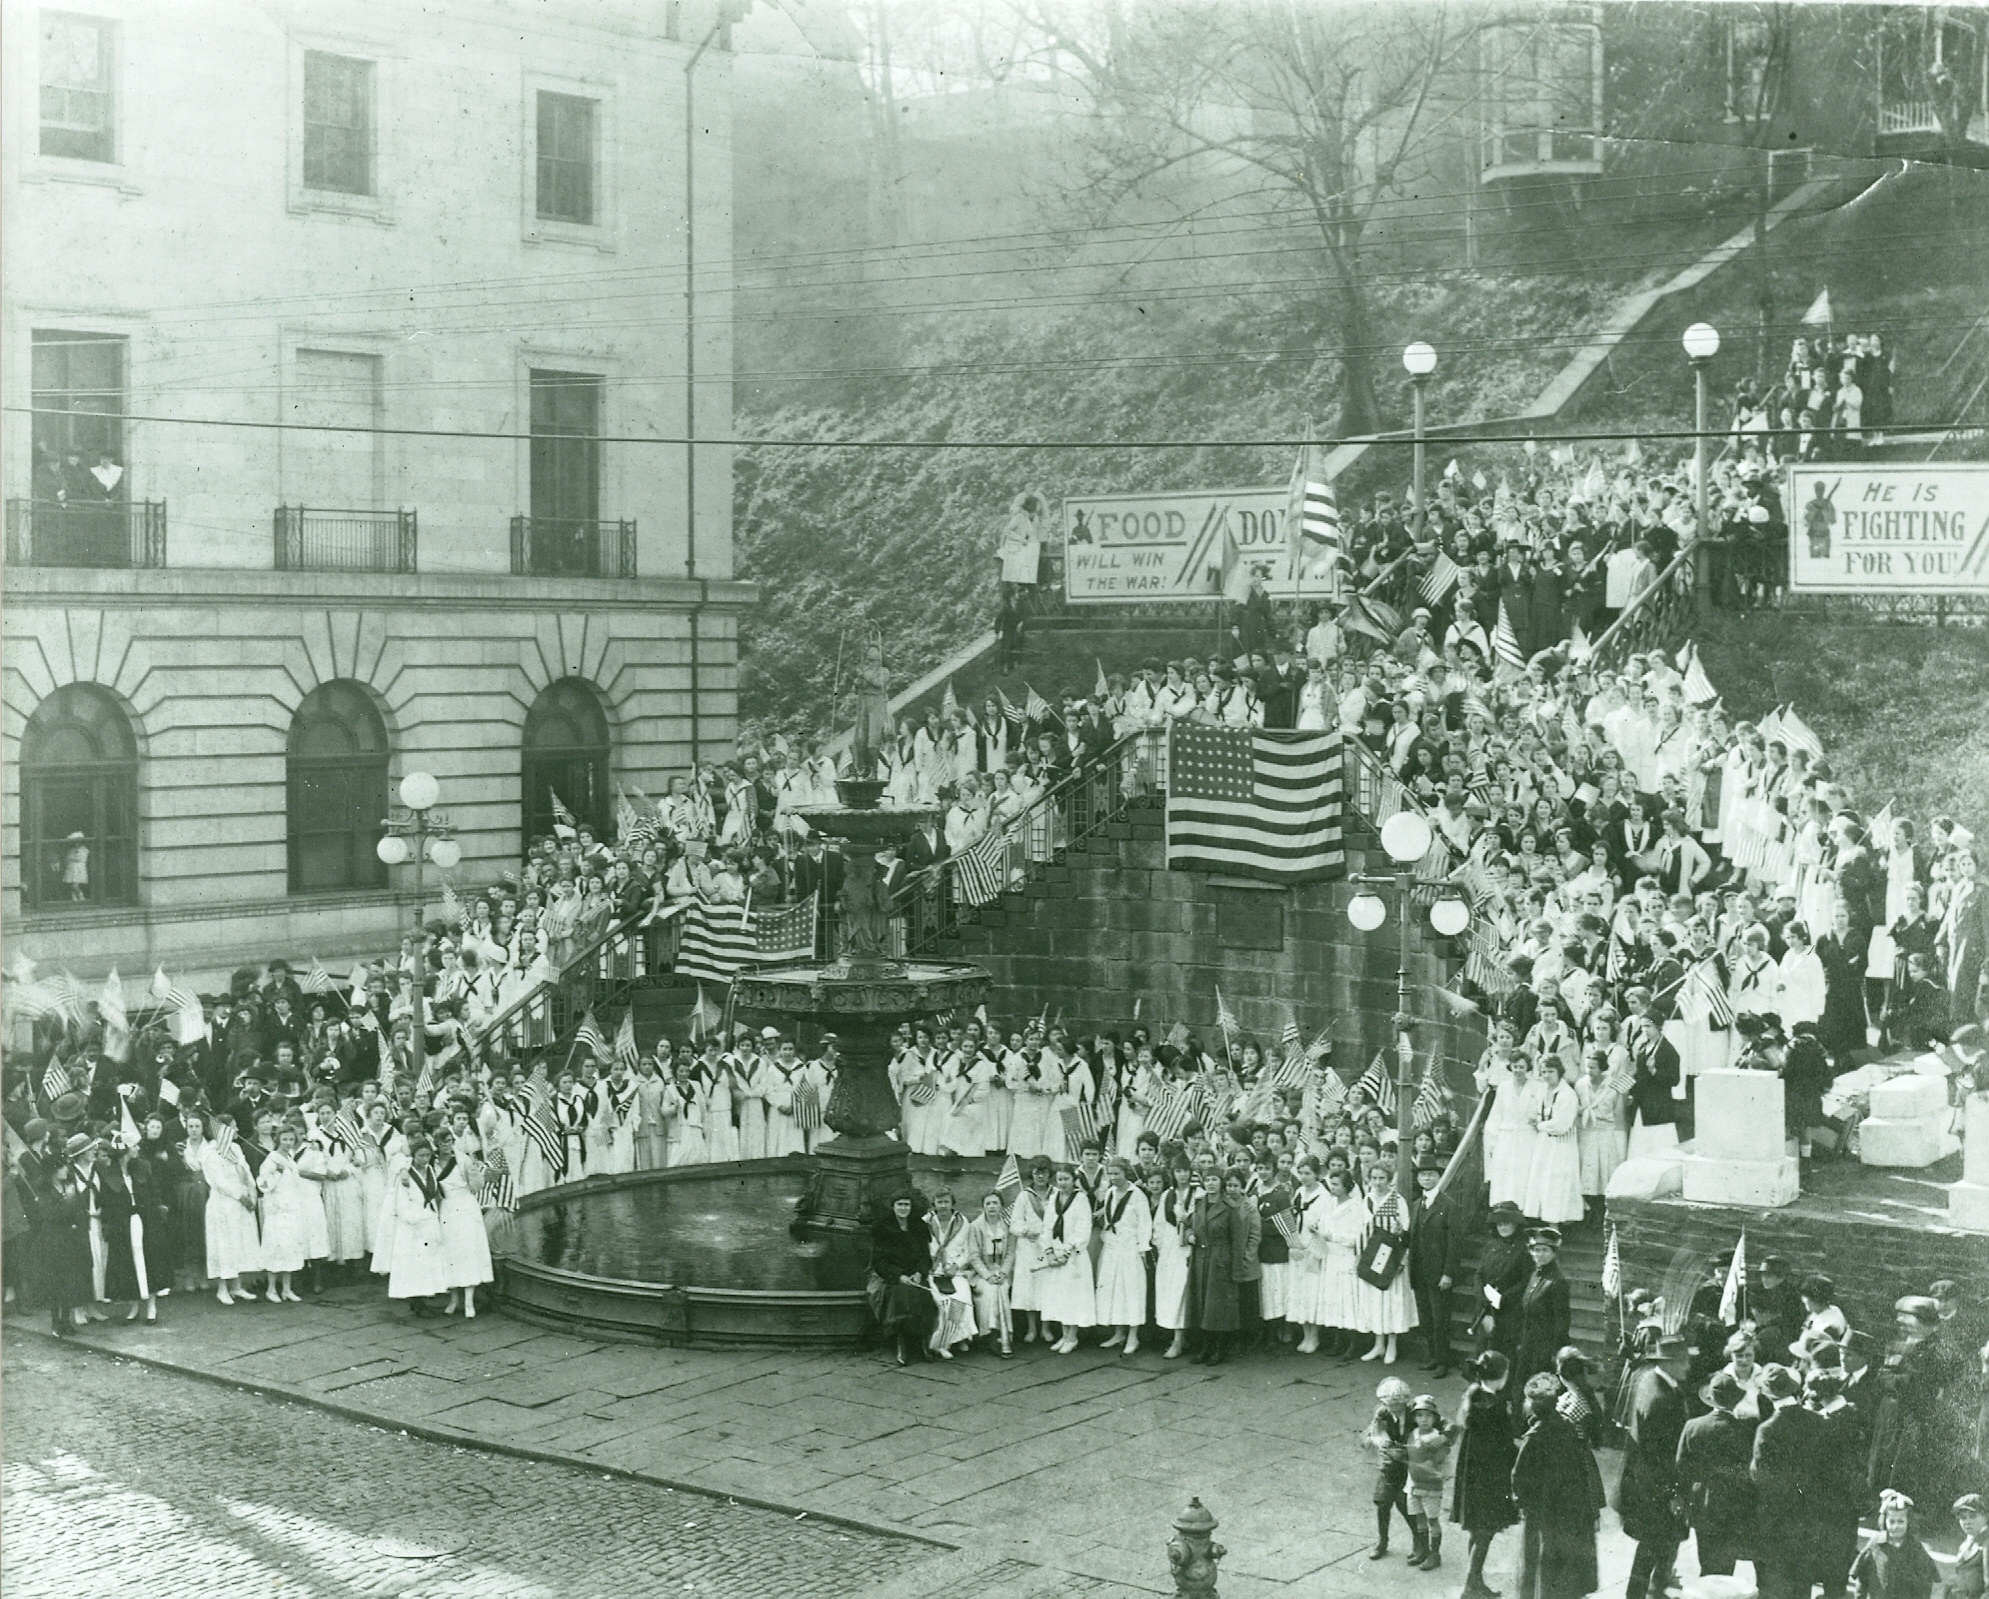 World War I Rally at Monument Terrace, 1914-1918